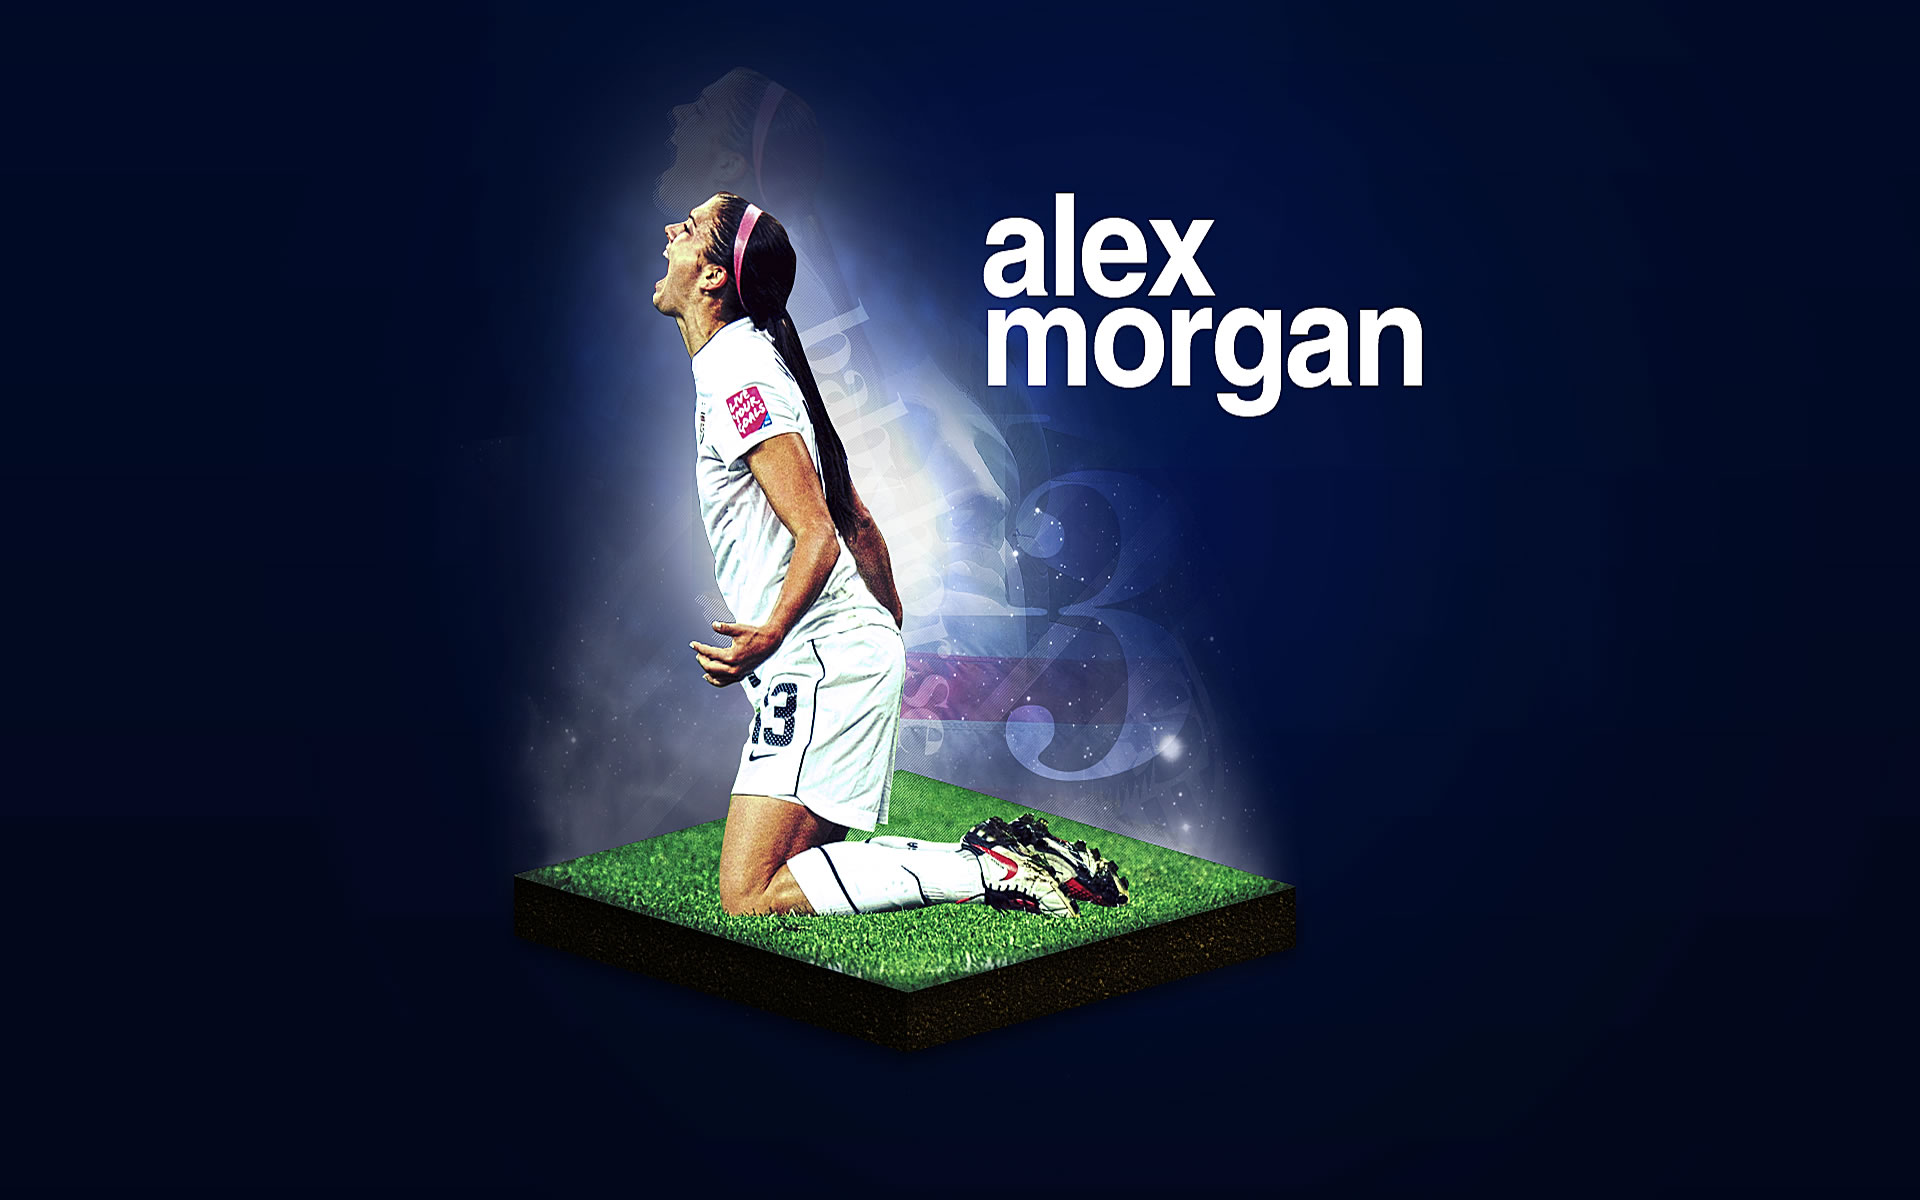 Wallpaper F 250 Tbol Femenino Alex Morgan Wallpapers